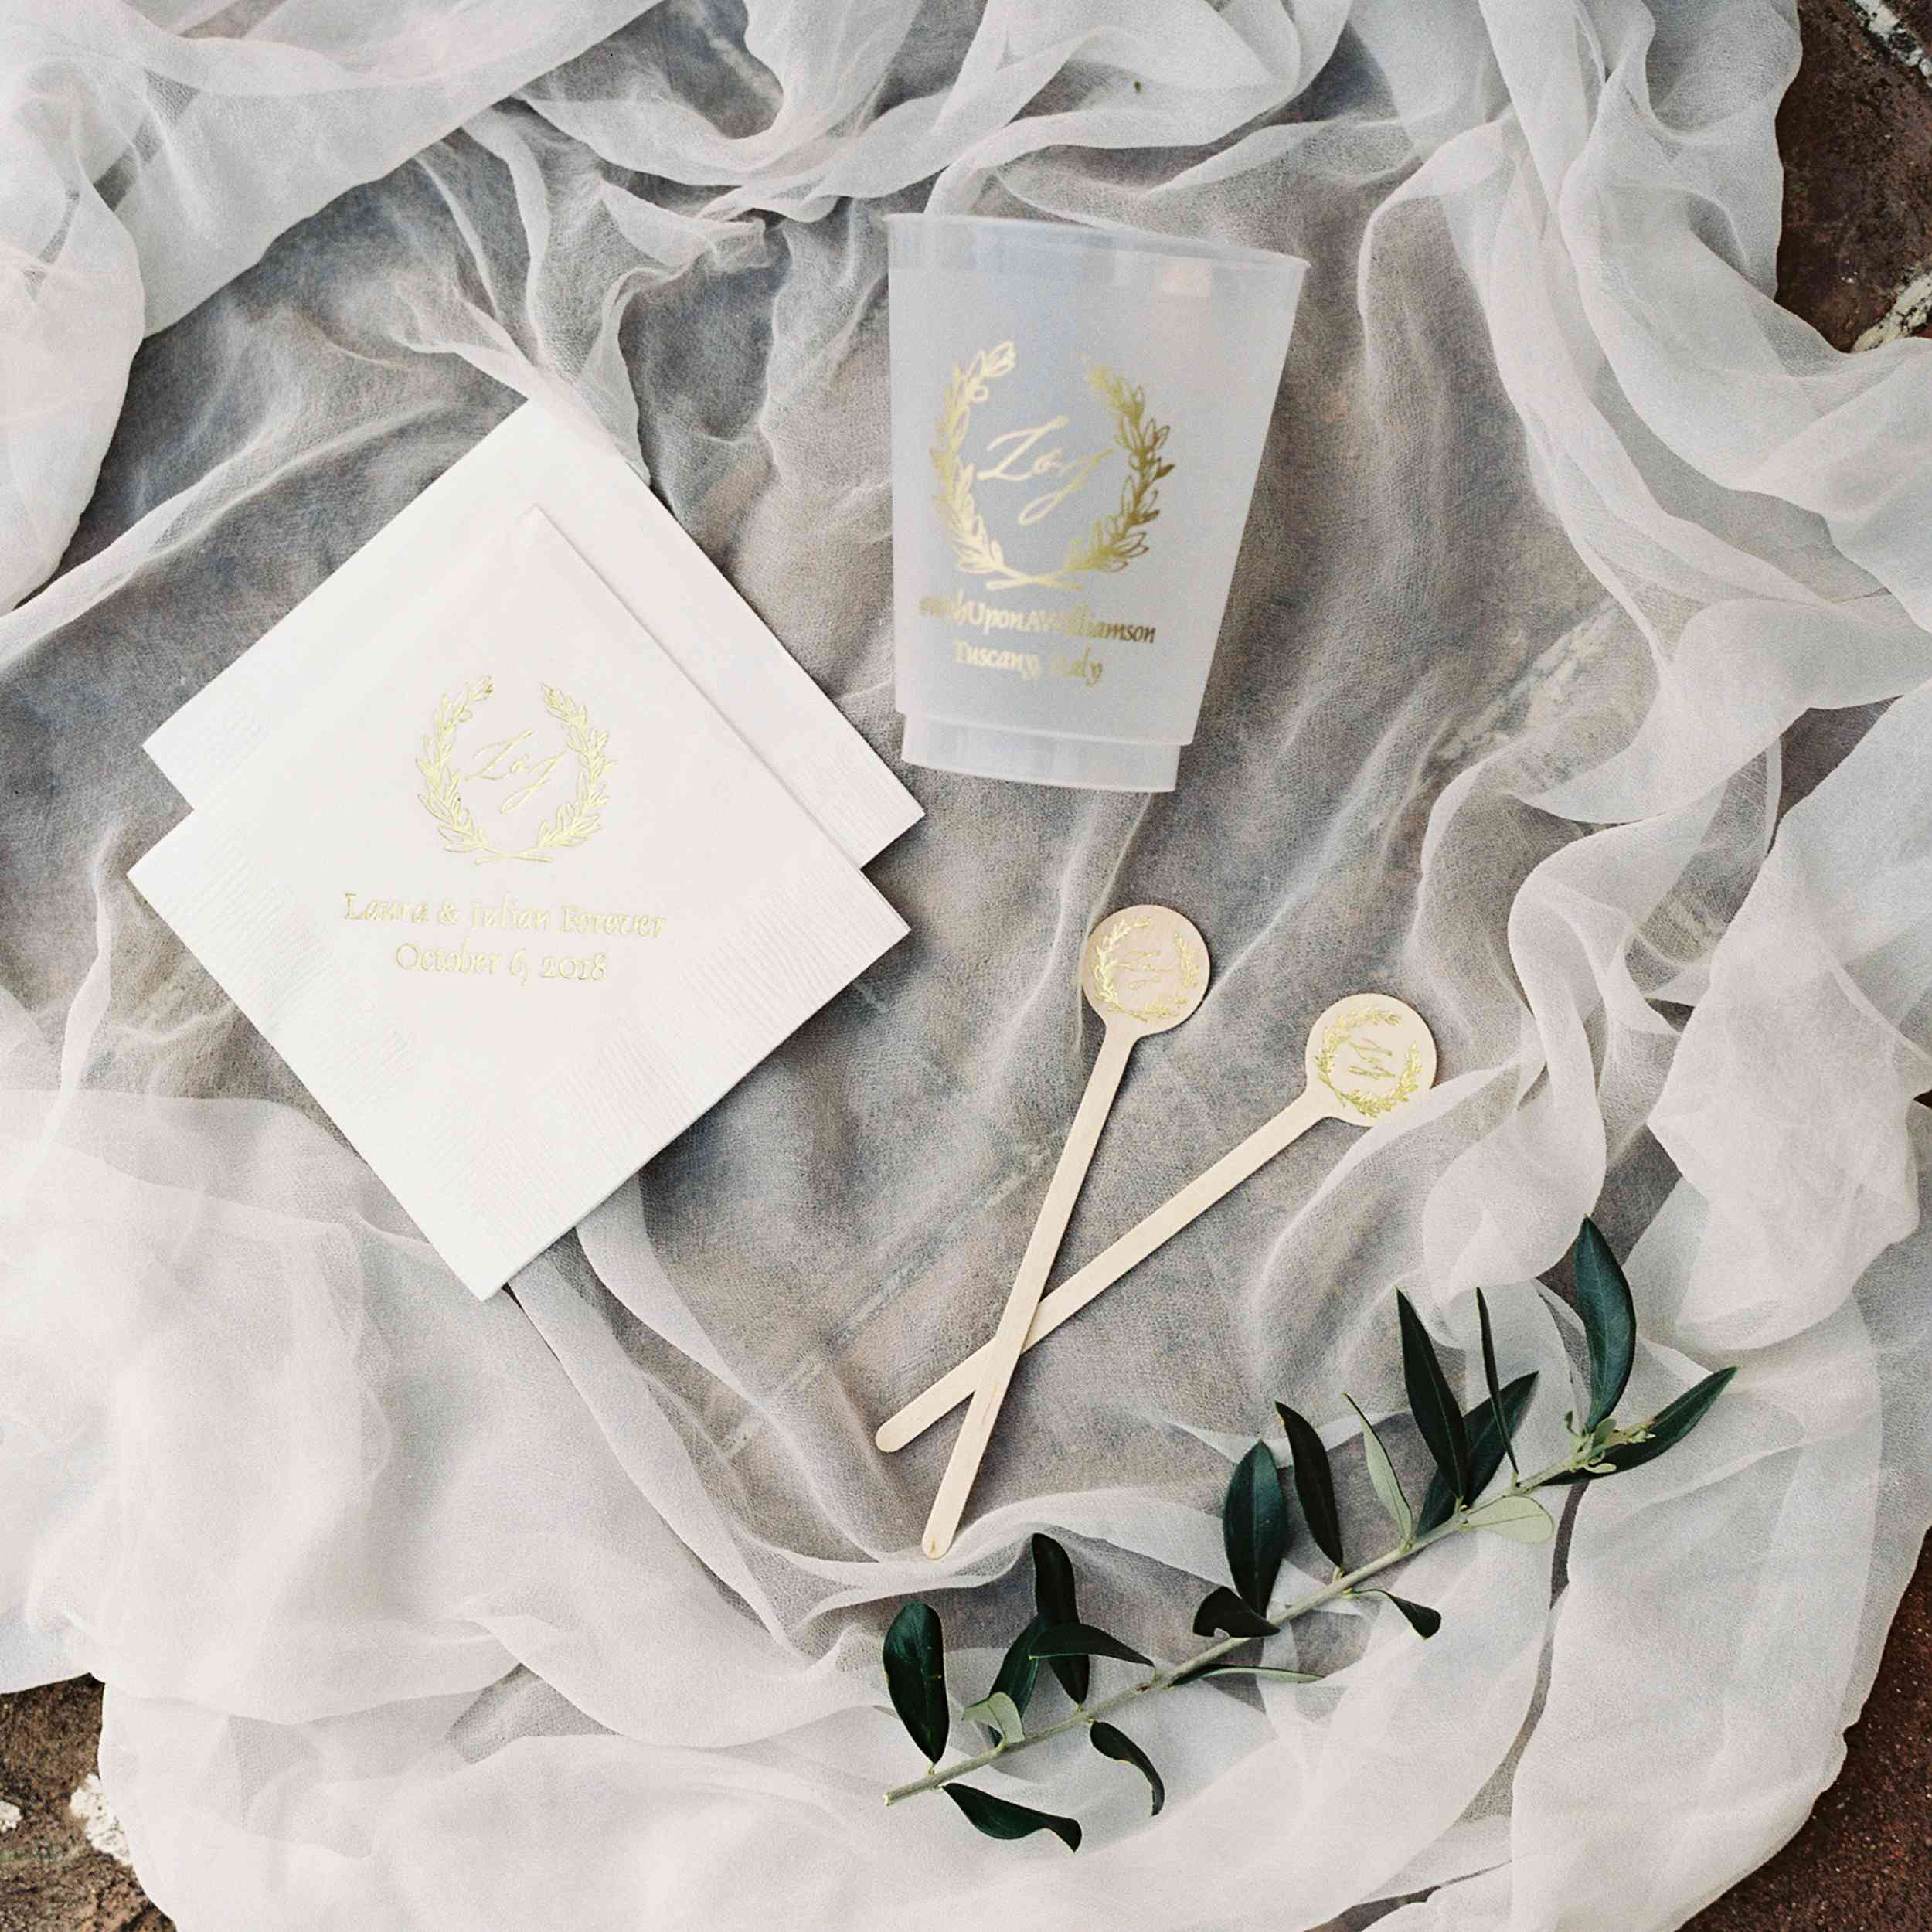 personalized napkins and cups on a veil